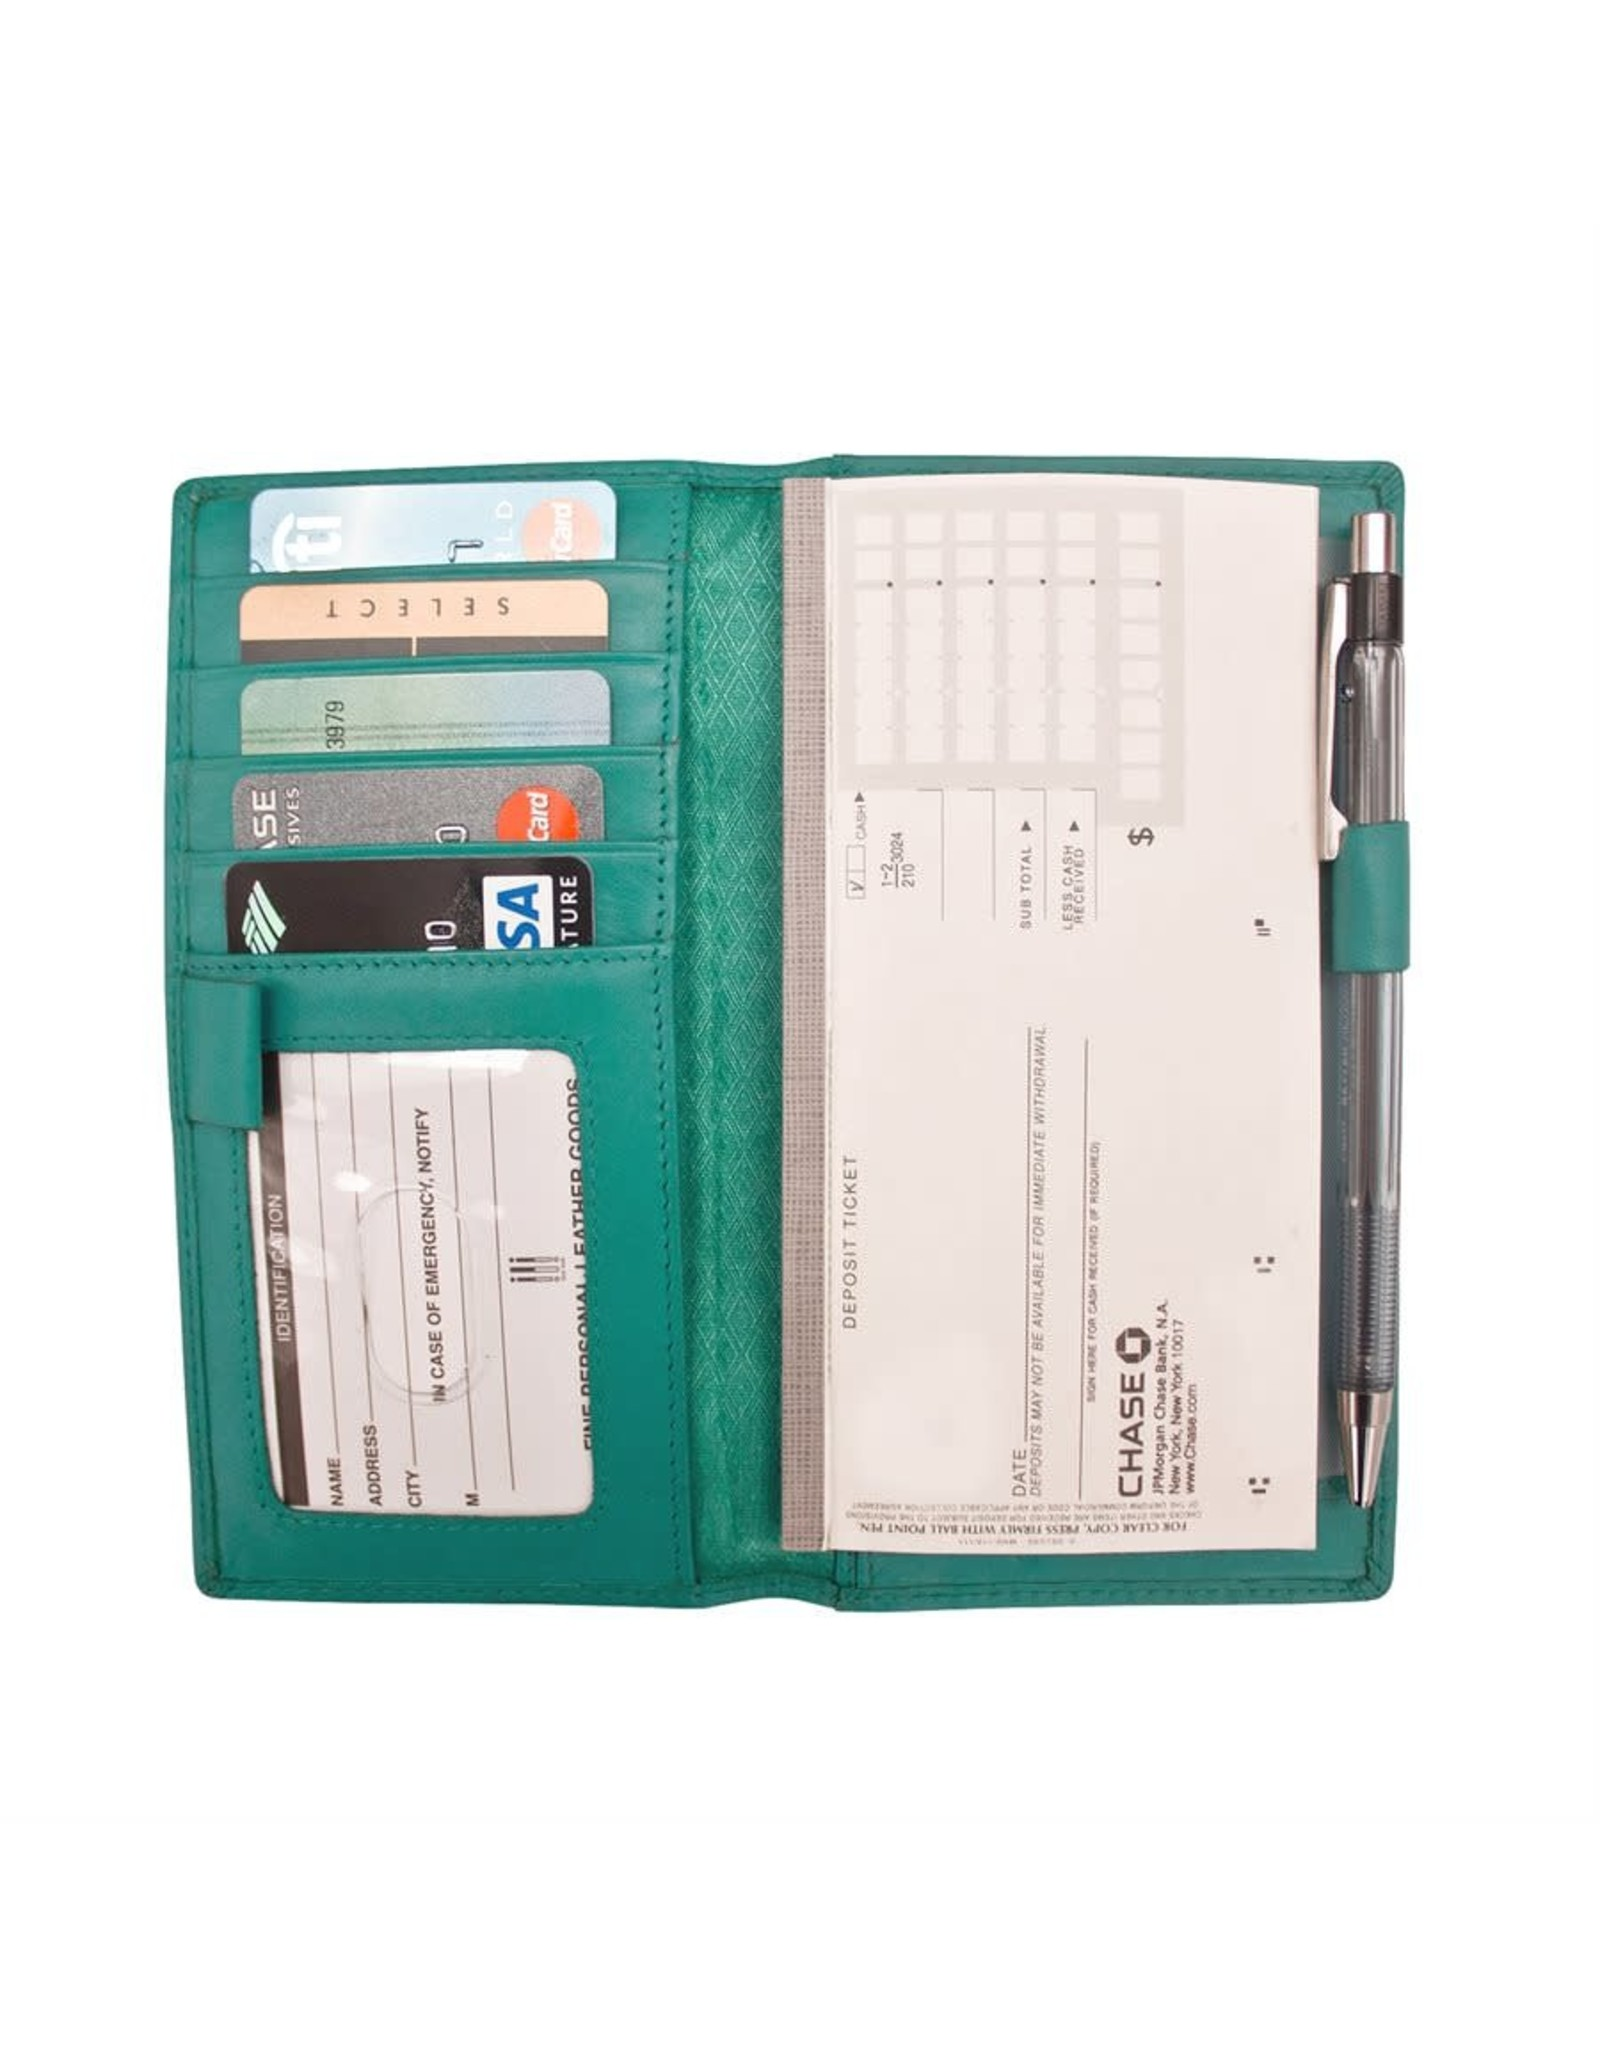 Leather Handbags and Accessories 7406 Aqua - RFID Checkbook Cover